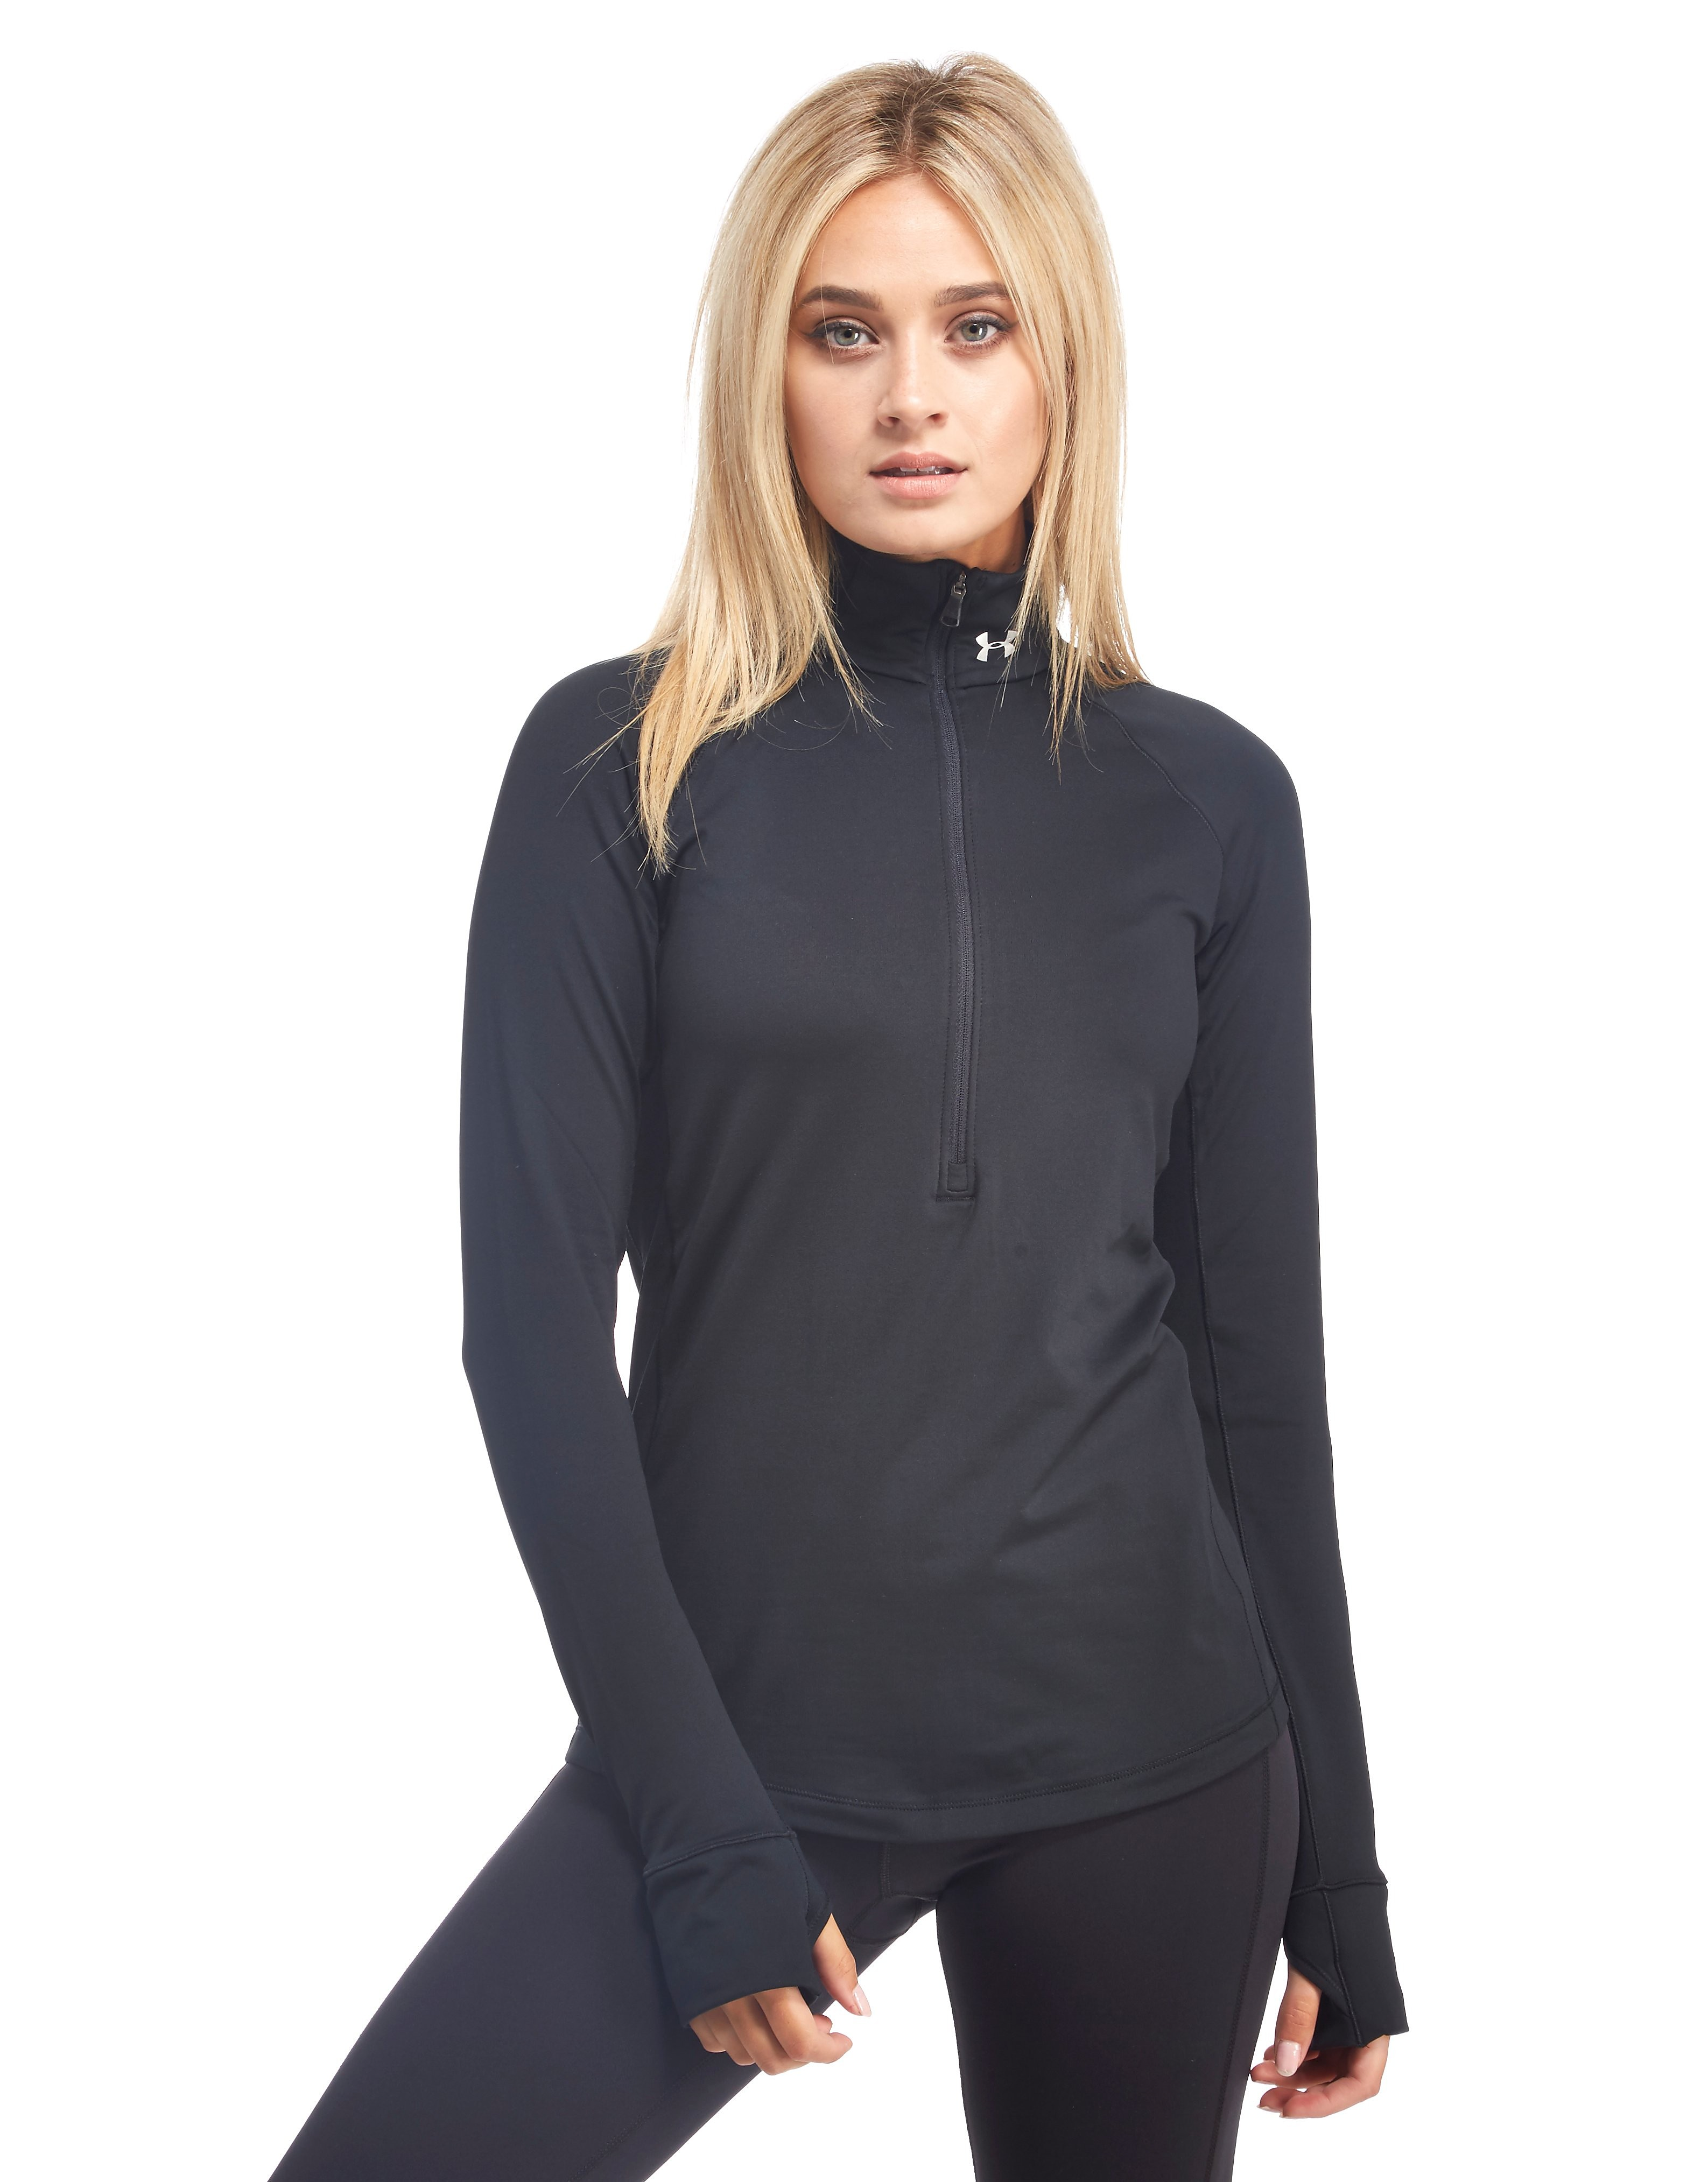 Under Armour ColdGear 1/2 Cozy Zip Top